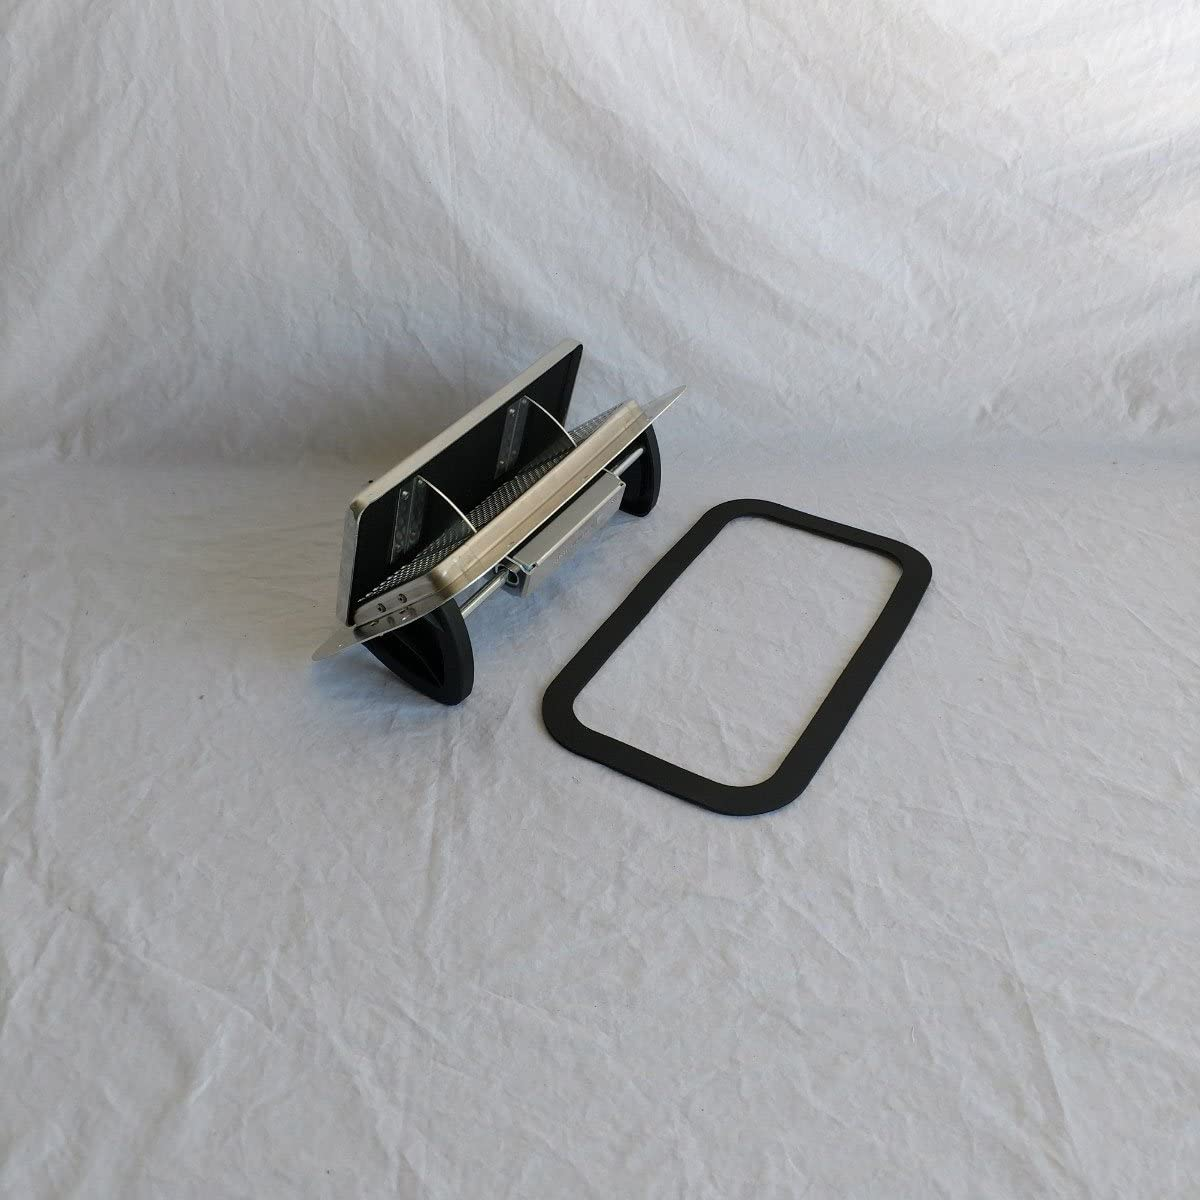 ROOF MOUNT VENT FOR RALLY CAR 2-WAY HINGELESS ALUMINUM